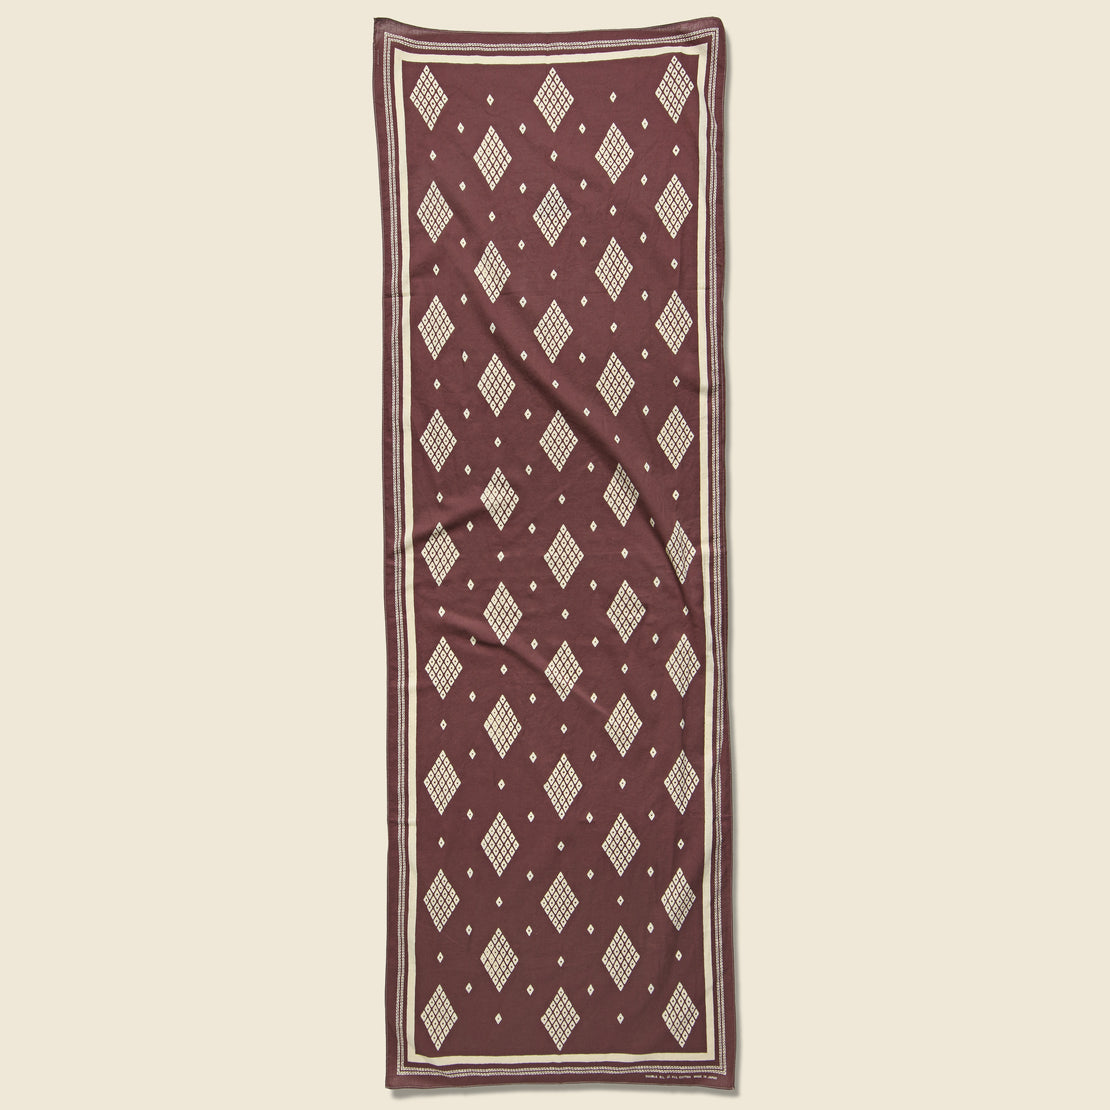 RRL Bandana Scarf - Faded Burgundy/Cream